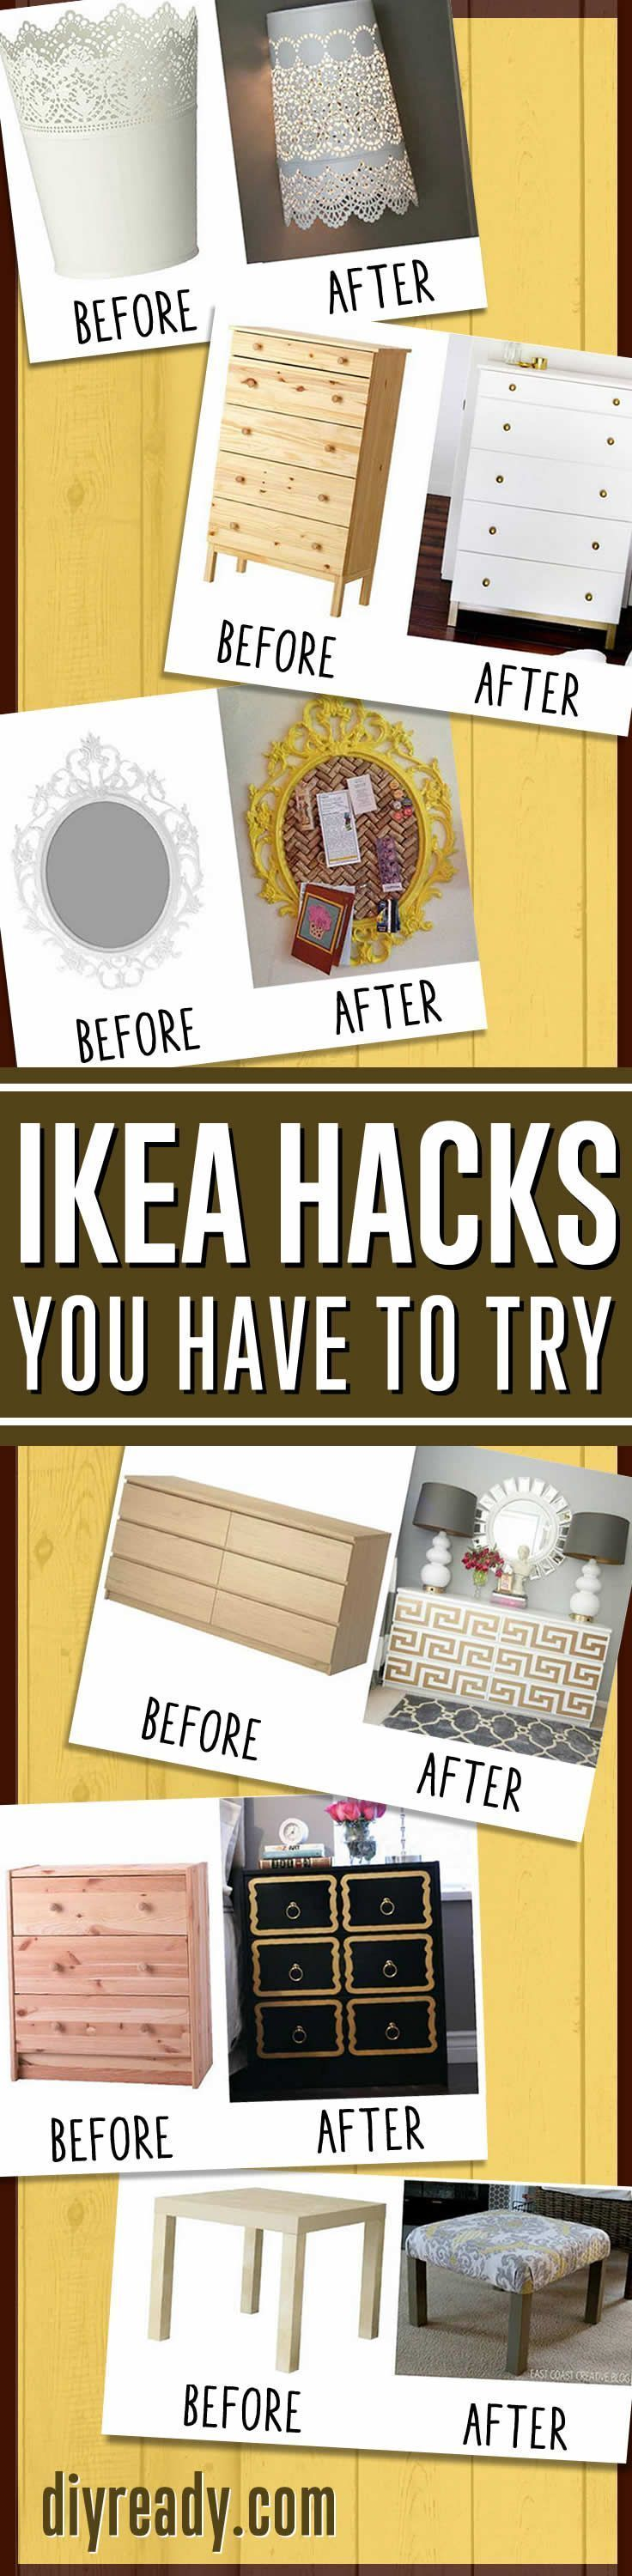 DIY Home Decor Ideas - IKEA Hacks Awesome Home Decor On A Budget By DIY Ready. http://diyready.com/15-amazing-ikea-hacks/